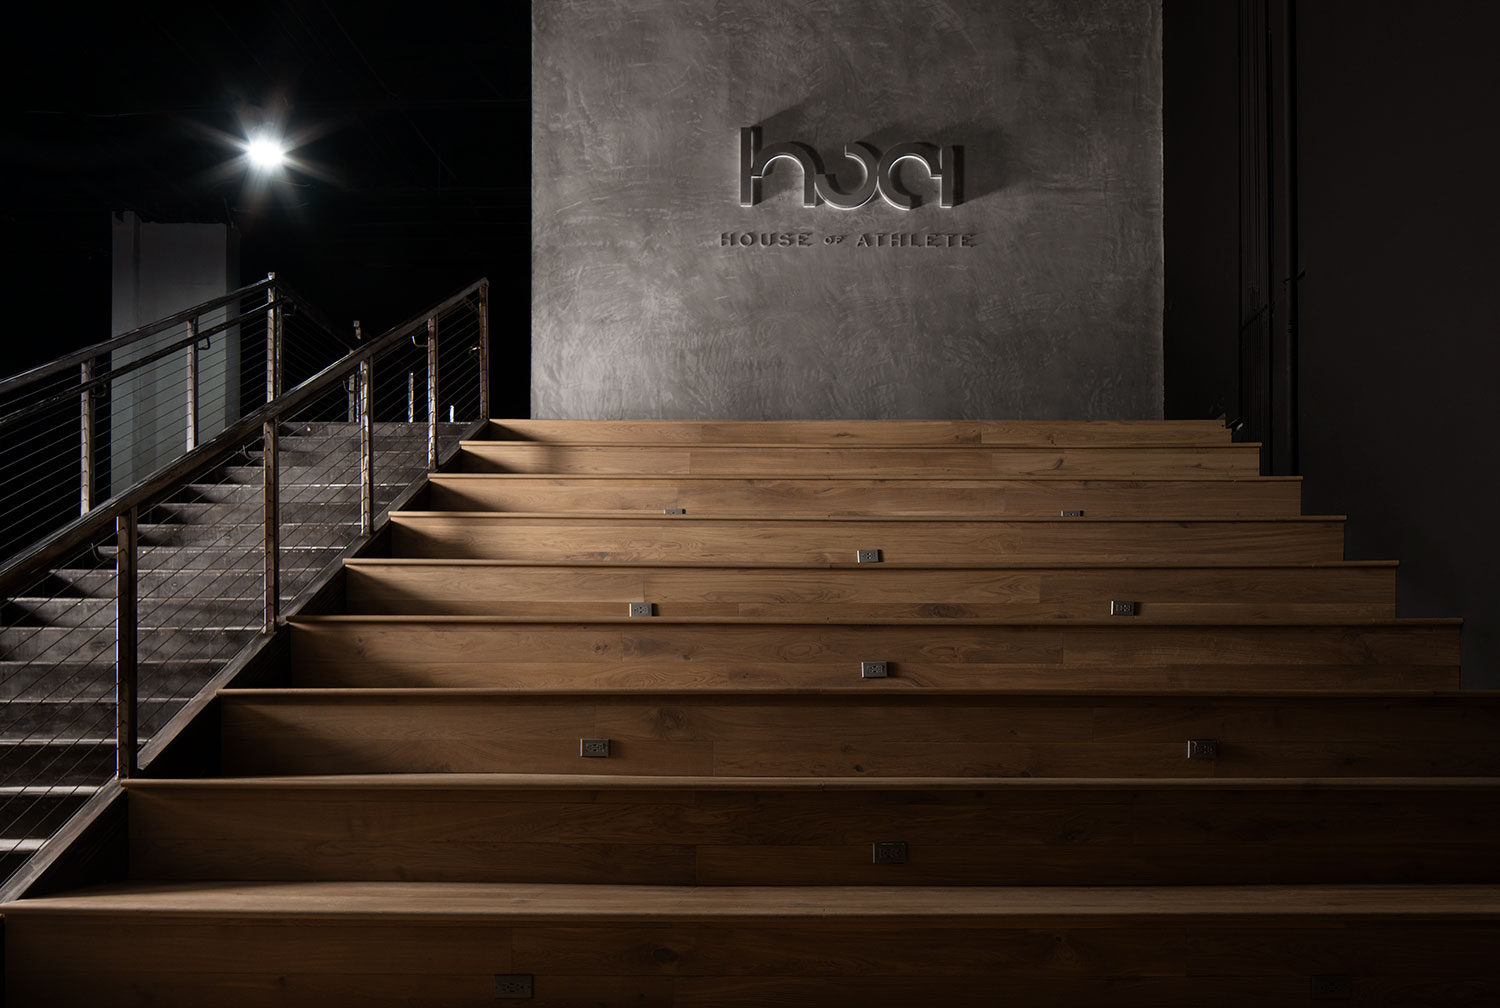 House of Athlete staircases